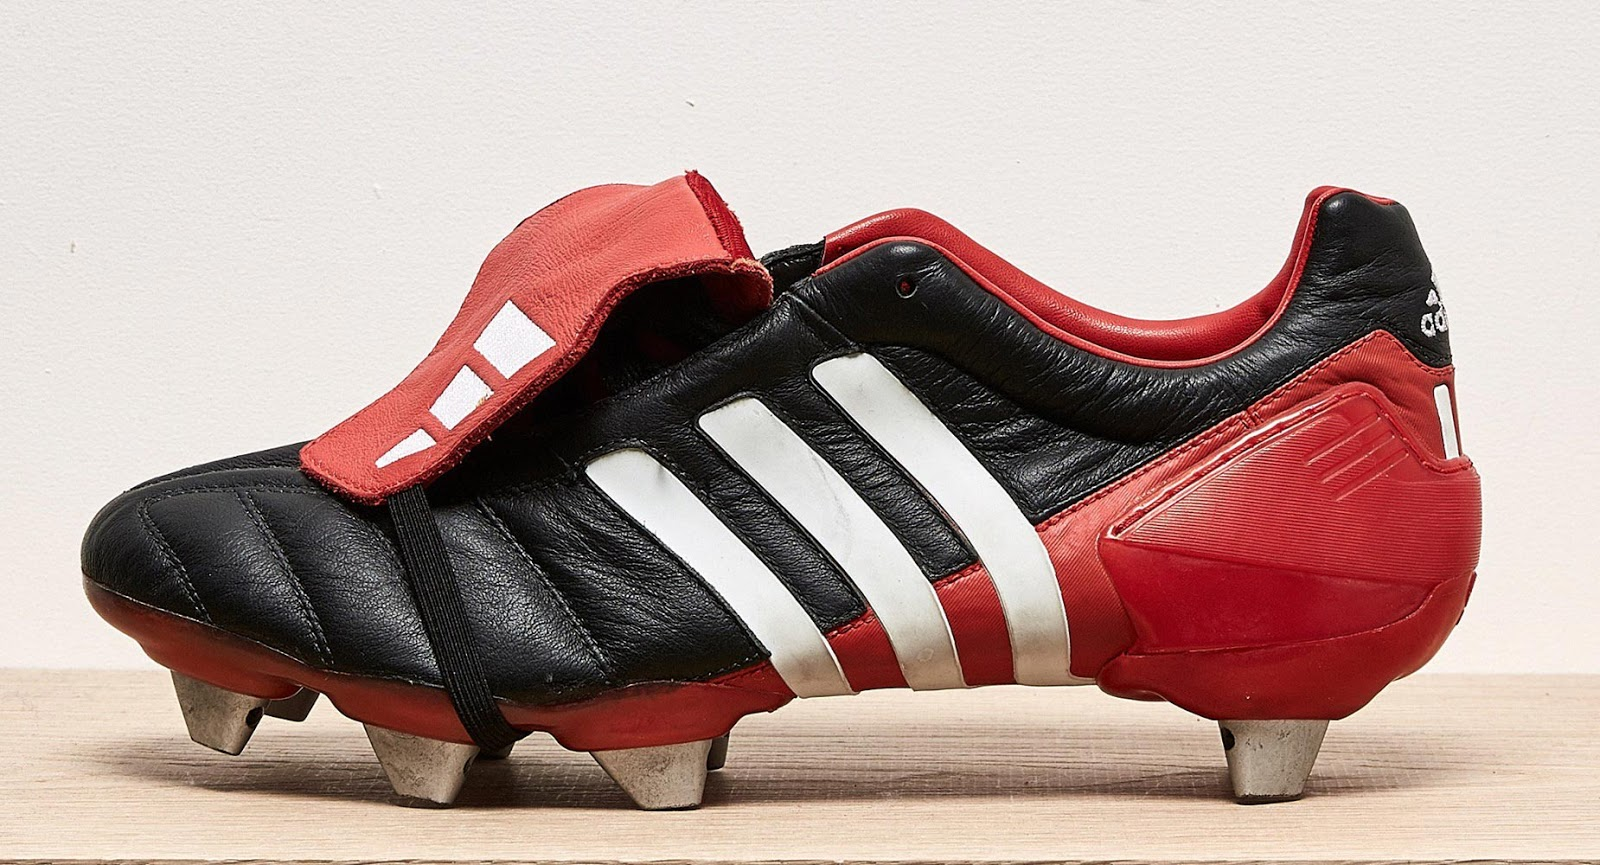 fast delivery classic style 100% top quality Closer Look: Adidas Predator Mania 2002 Football Boots ...